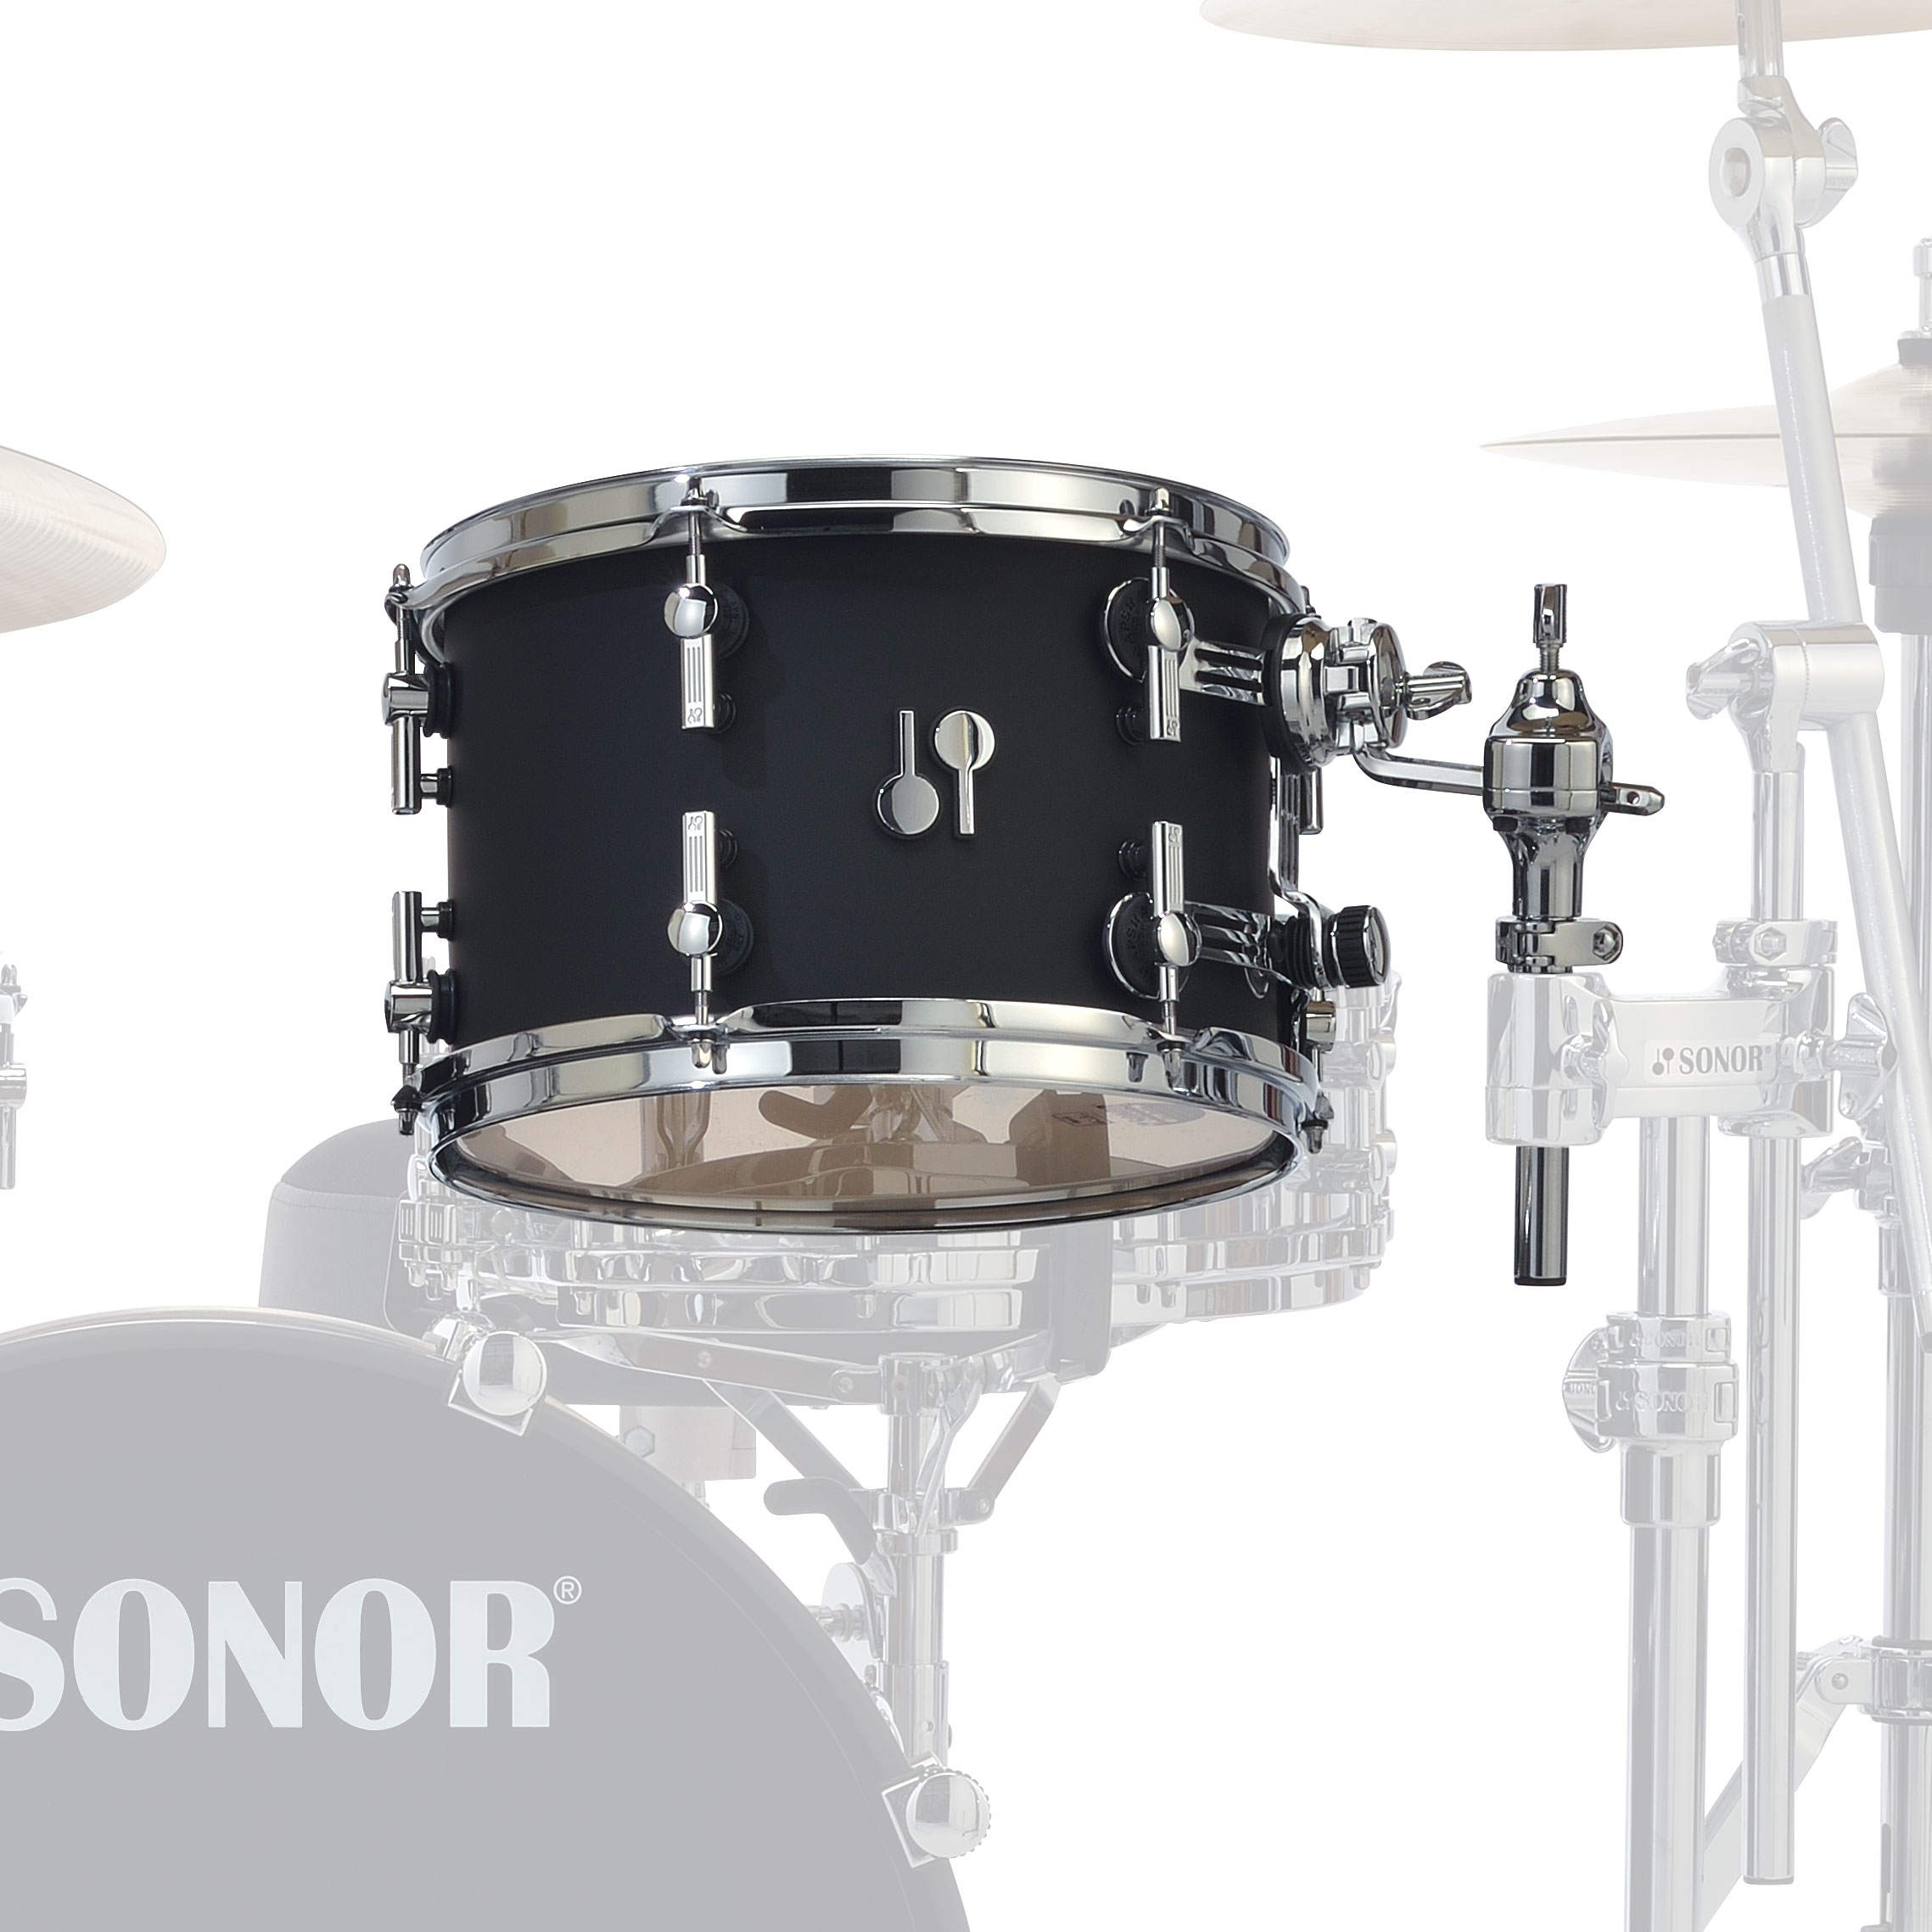 "Sonor 8"" (Diameter) x 7"" (Deep) SQ2 Vintage Maple Tom"